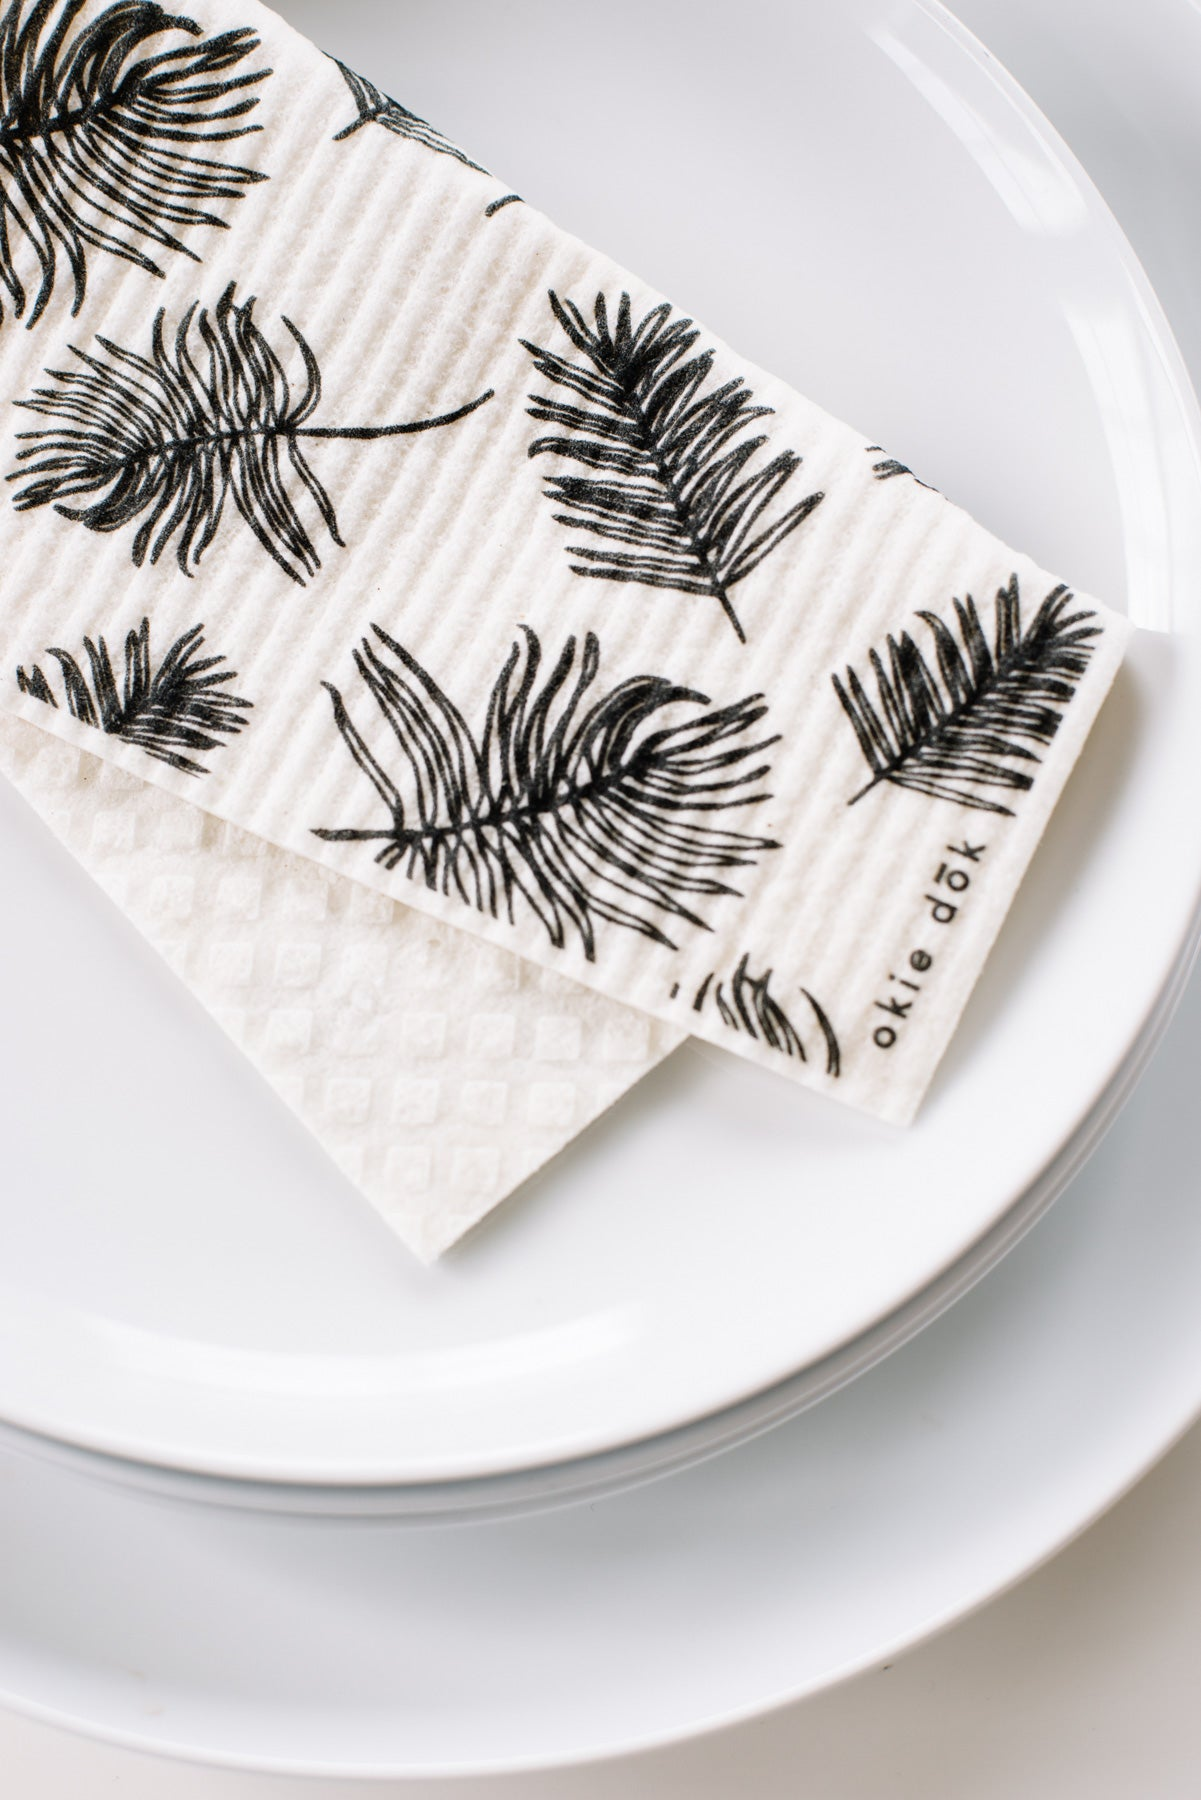 Okie Dok Swedish Dishcloth - Feathers